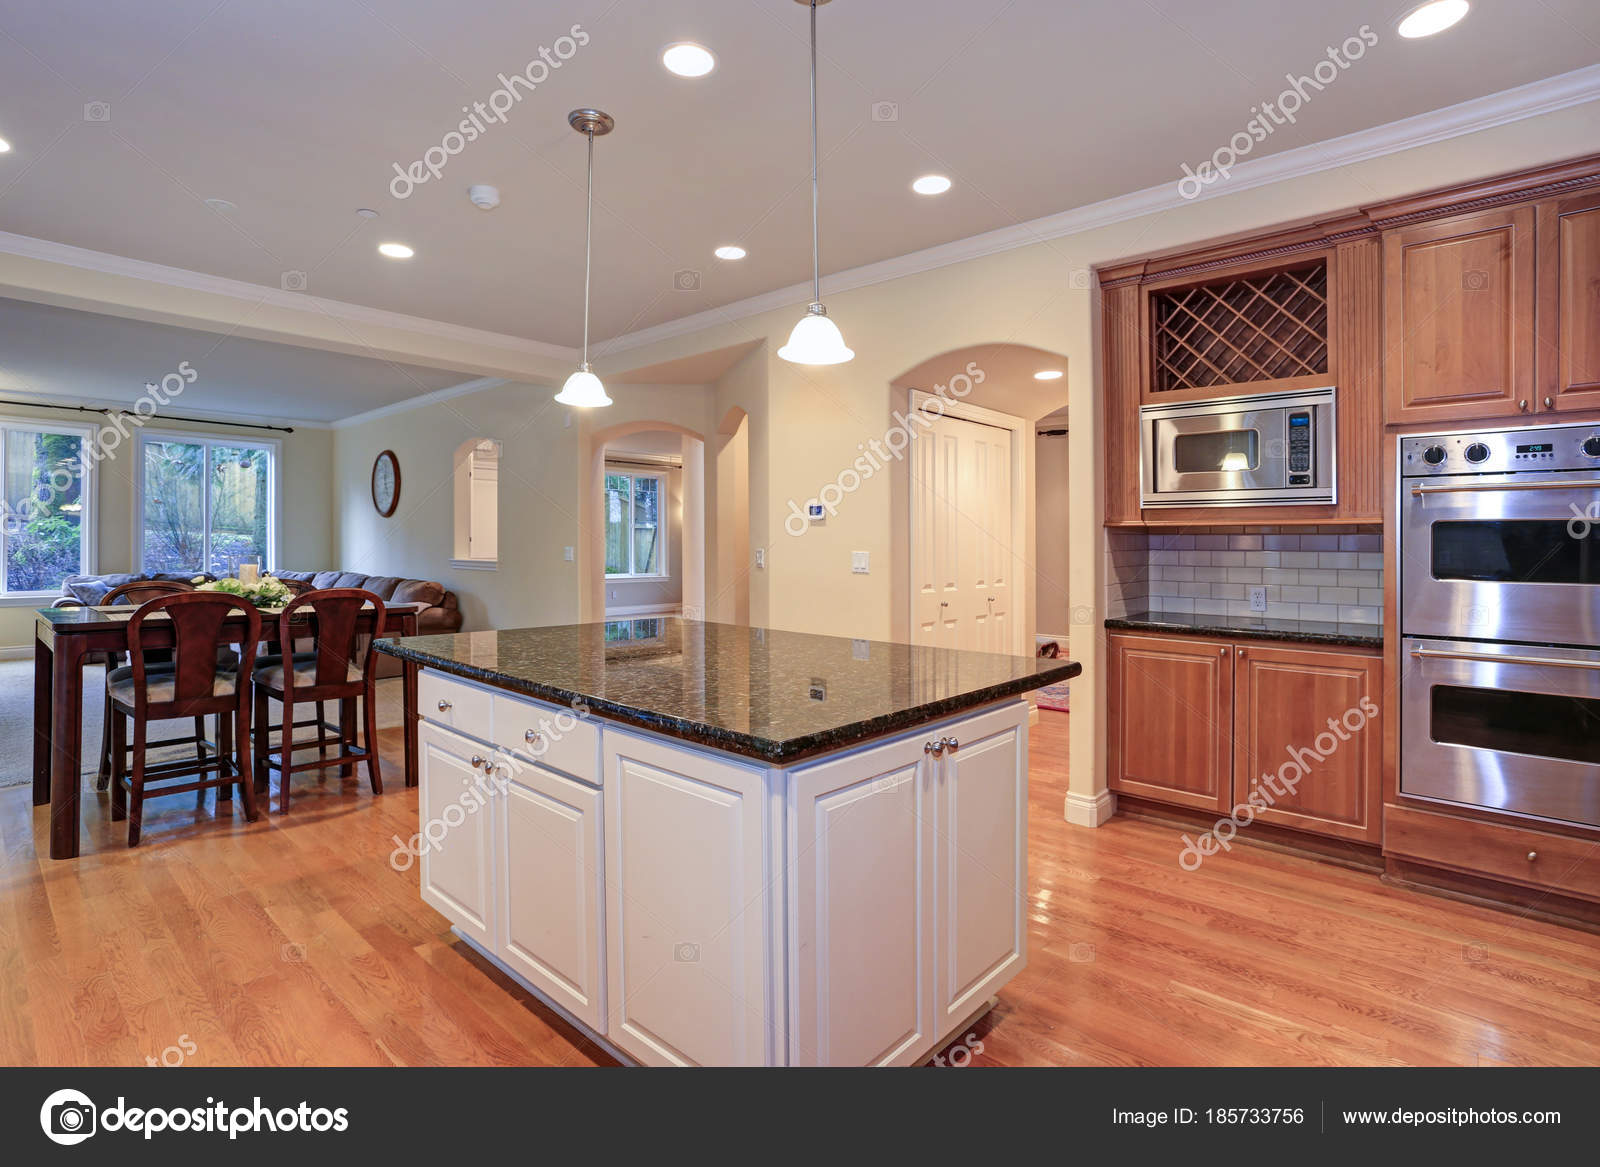 luxury kitchen fitted with viking appliances stock photo alabn rh depositphotos com White Cabinets above Washer and Dryer White Laundry Room